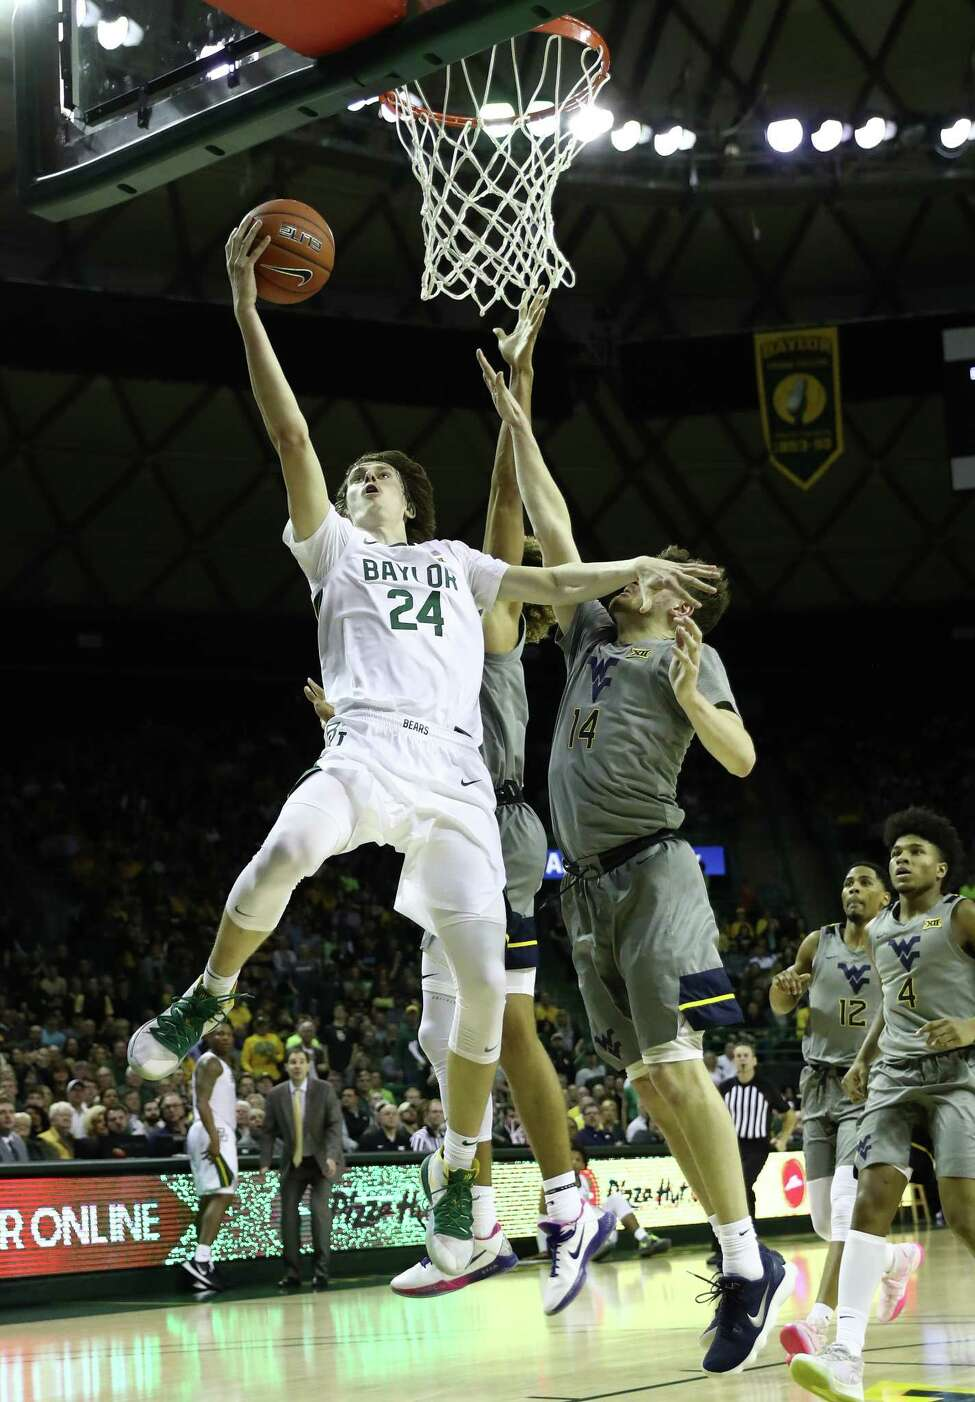 WACO, TEXAS - FEBRUARY 15: Matthew Mayer #24 of the Baylor Bears goes up for a shot against Chase Harler #14 of the West Virginia Mountaineers during the second half at Ferrell Center on February 15, 2020 in Waco, Texas. (Photo by Ronald Martinez/Getty Images)